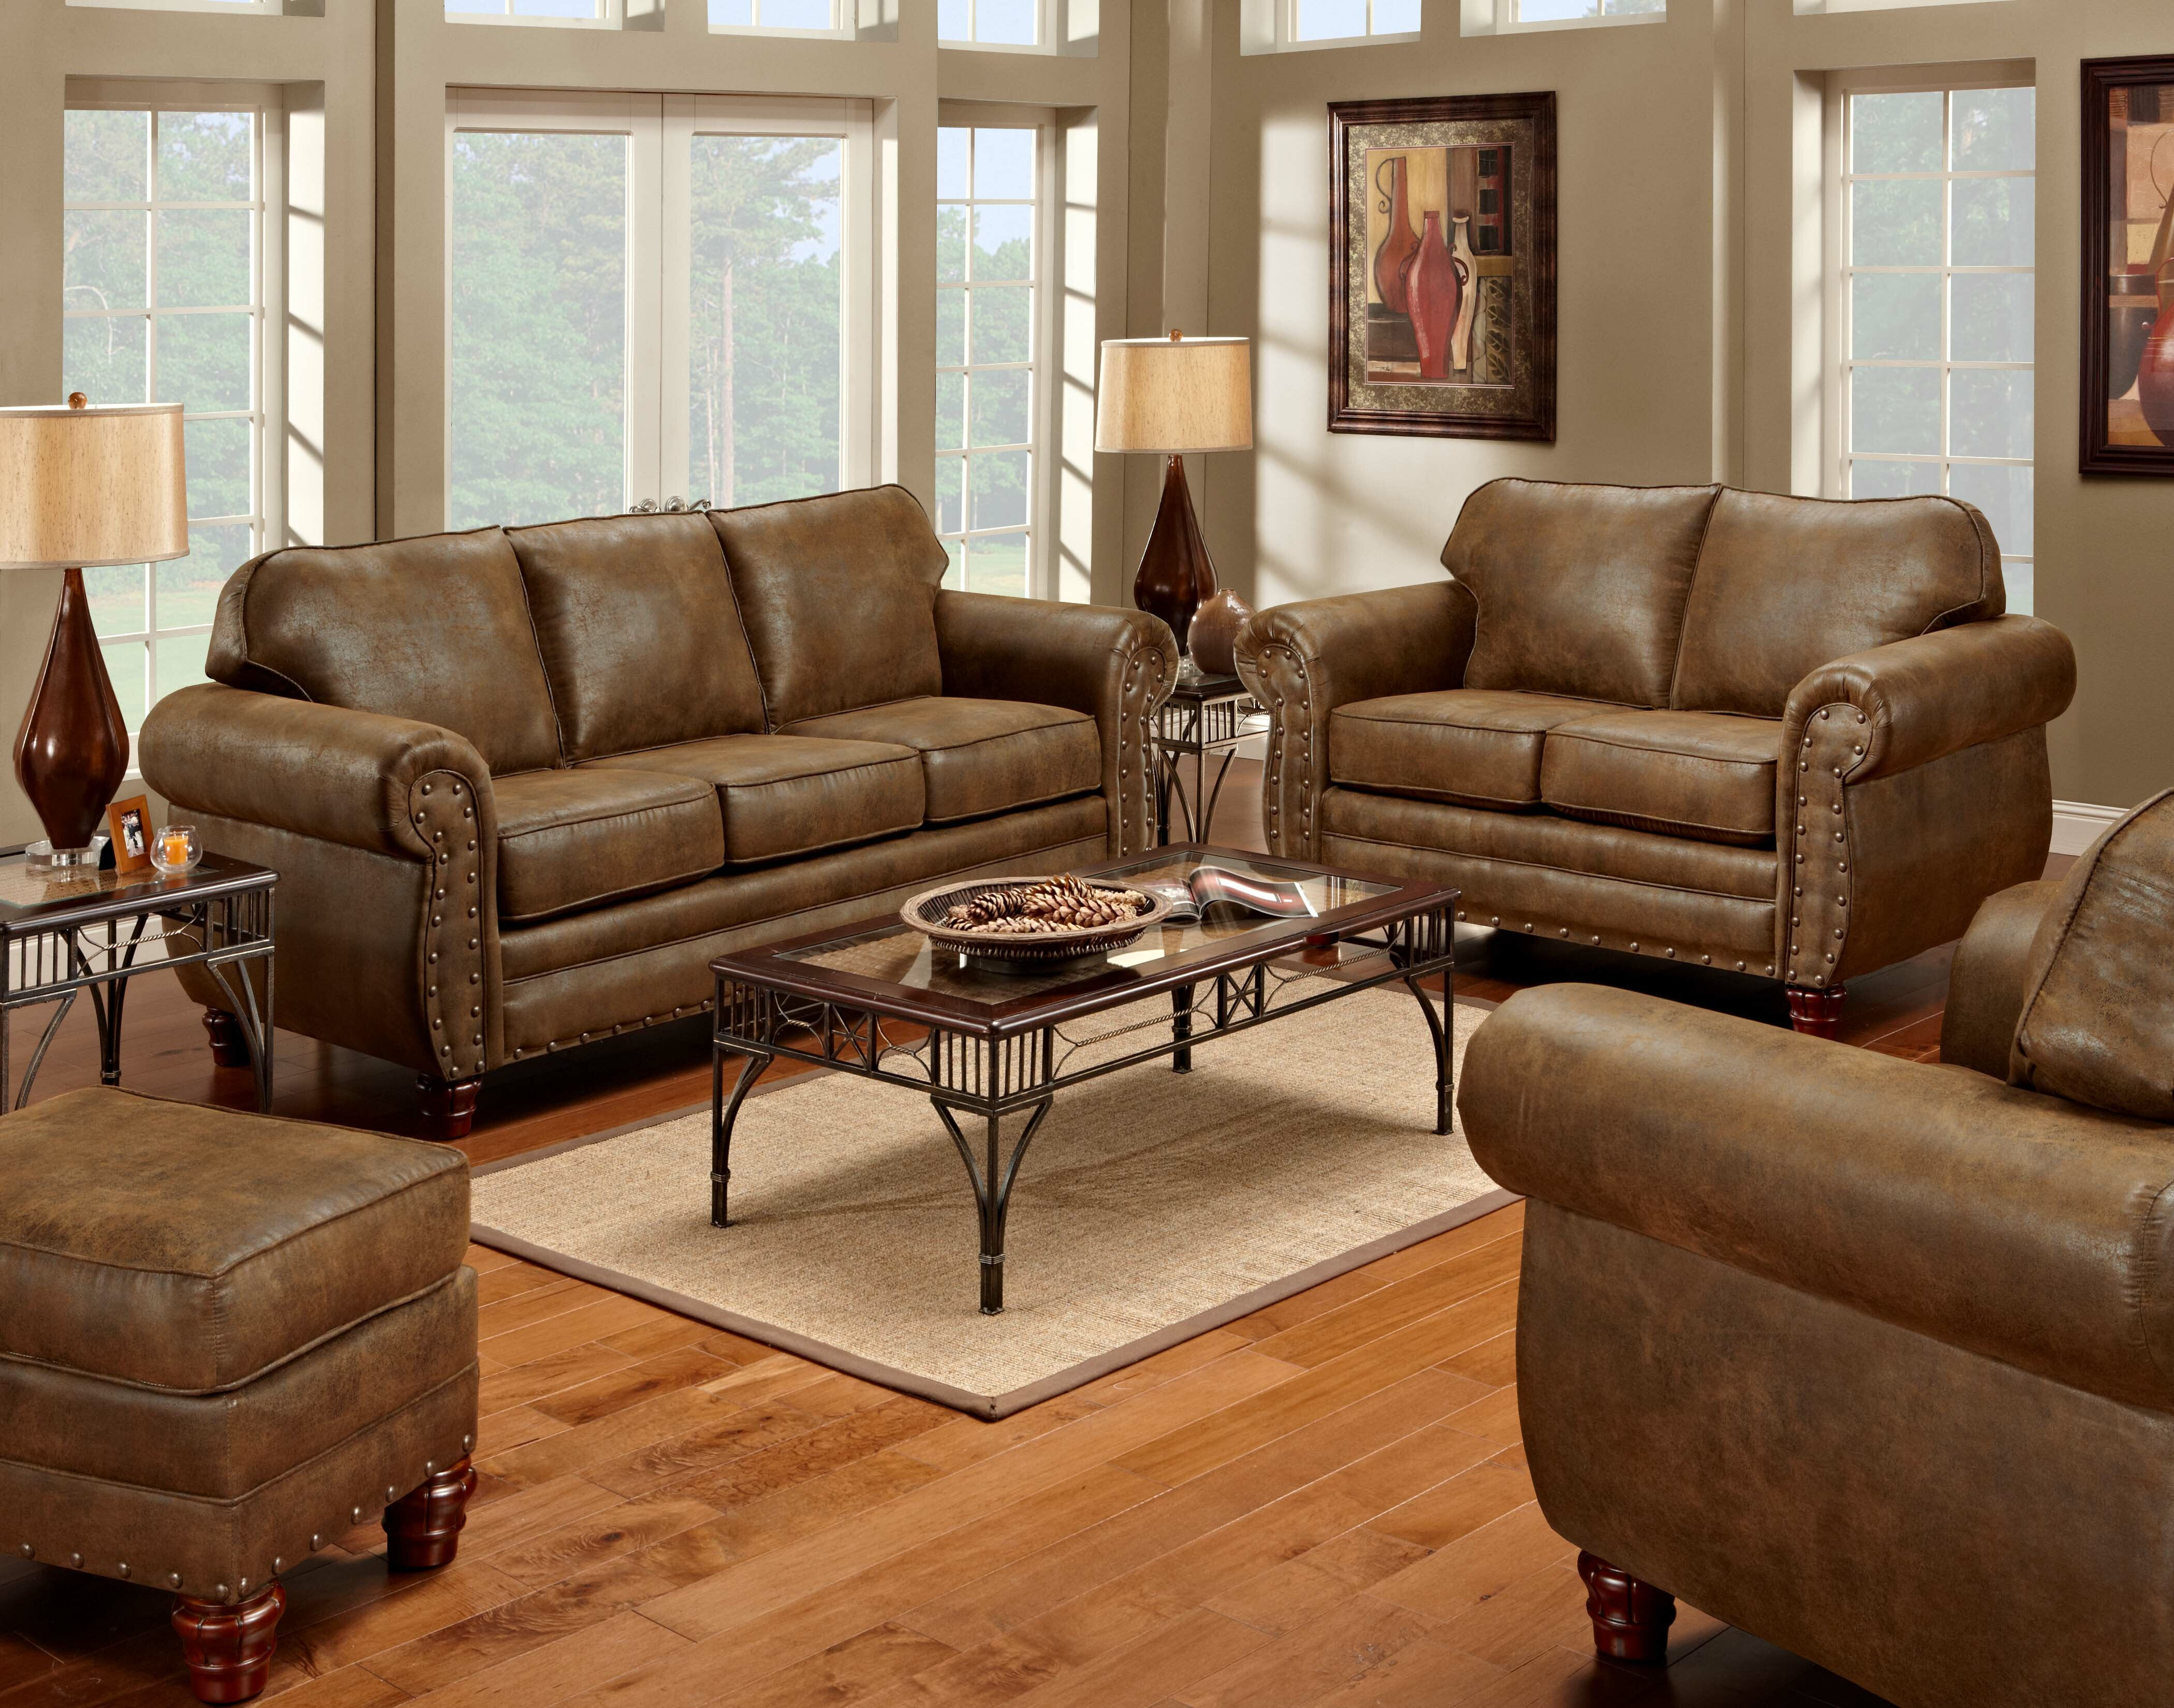 American furniture classics sedona 4 piece living room set reviews wayfair